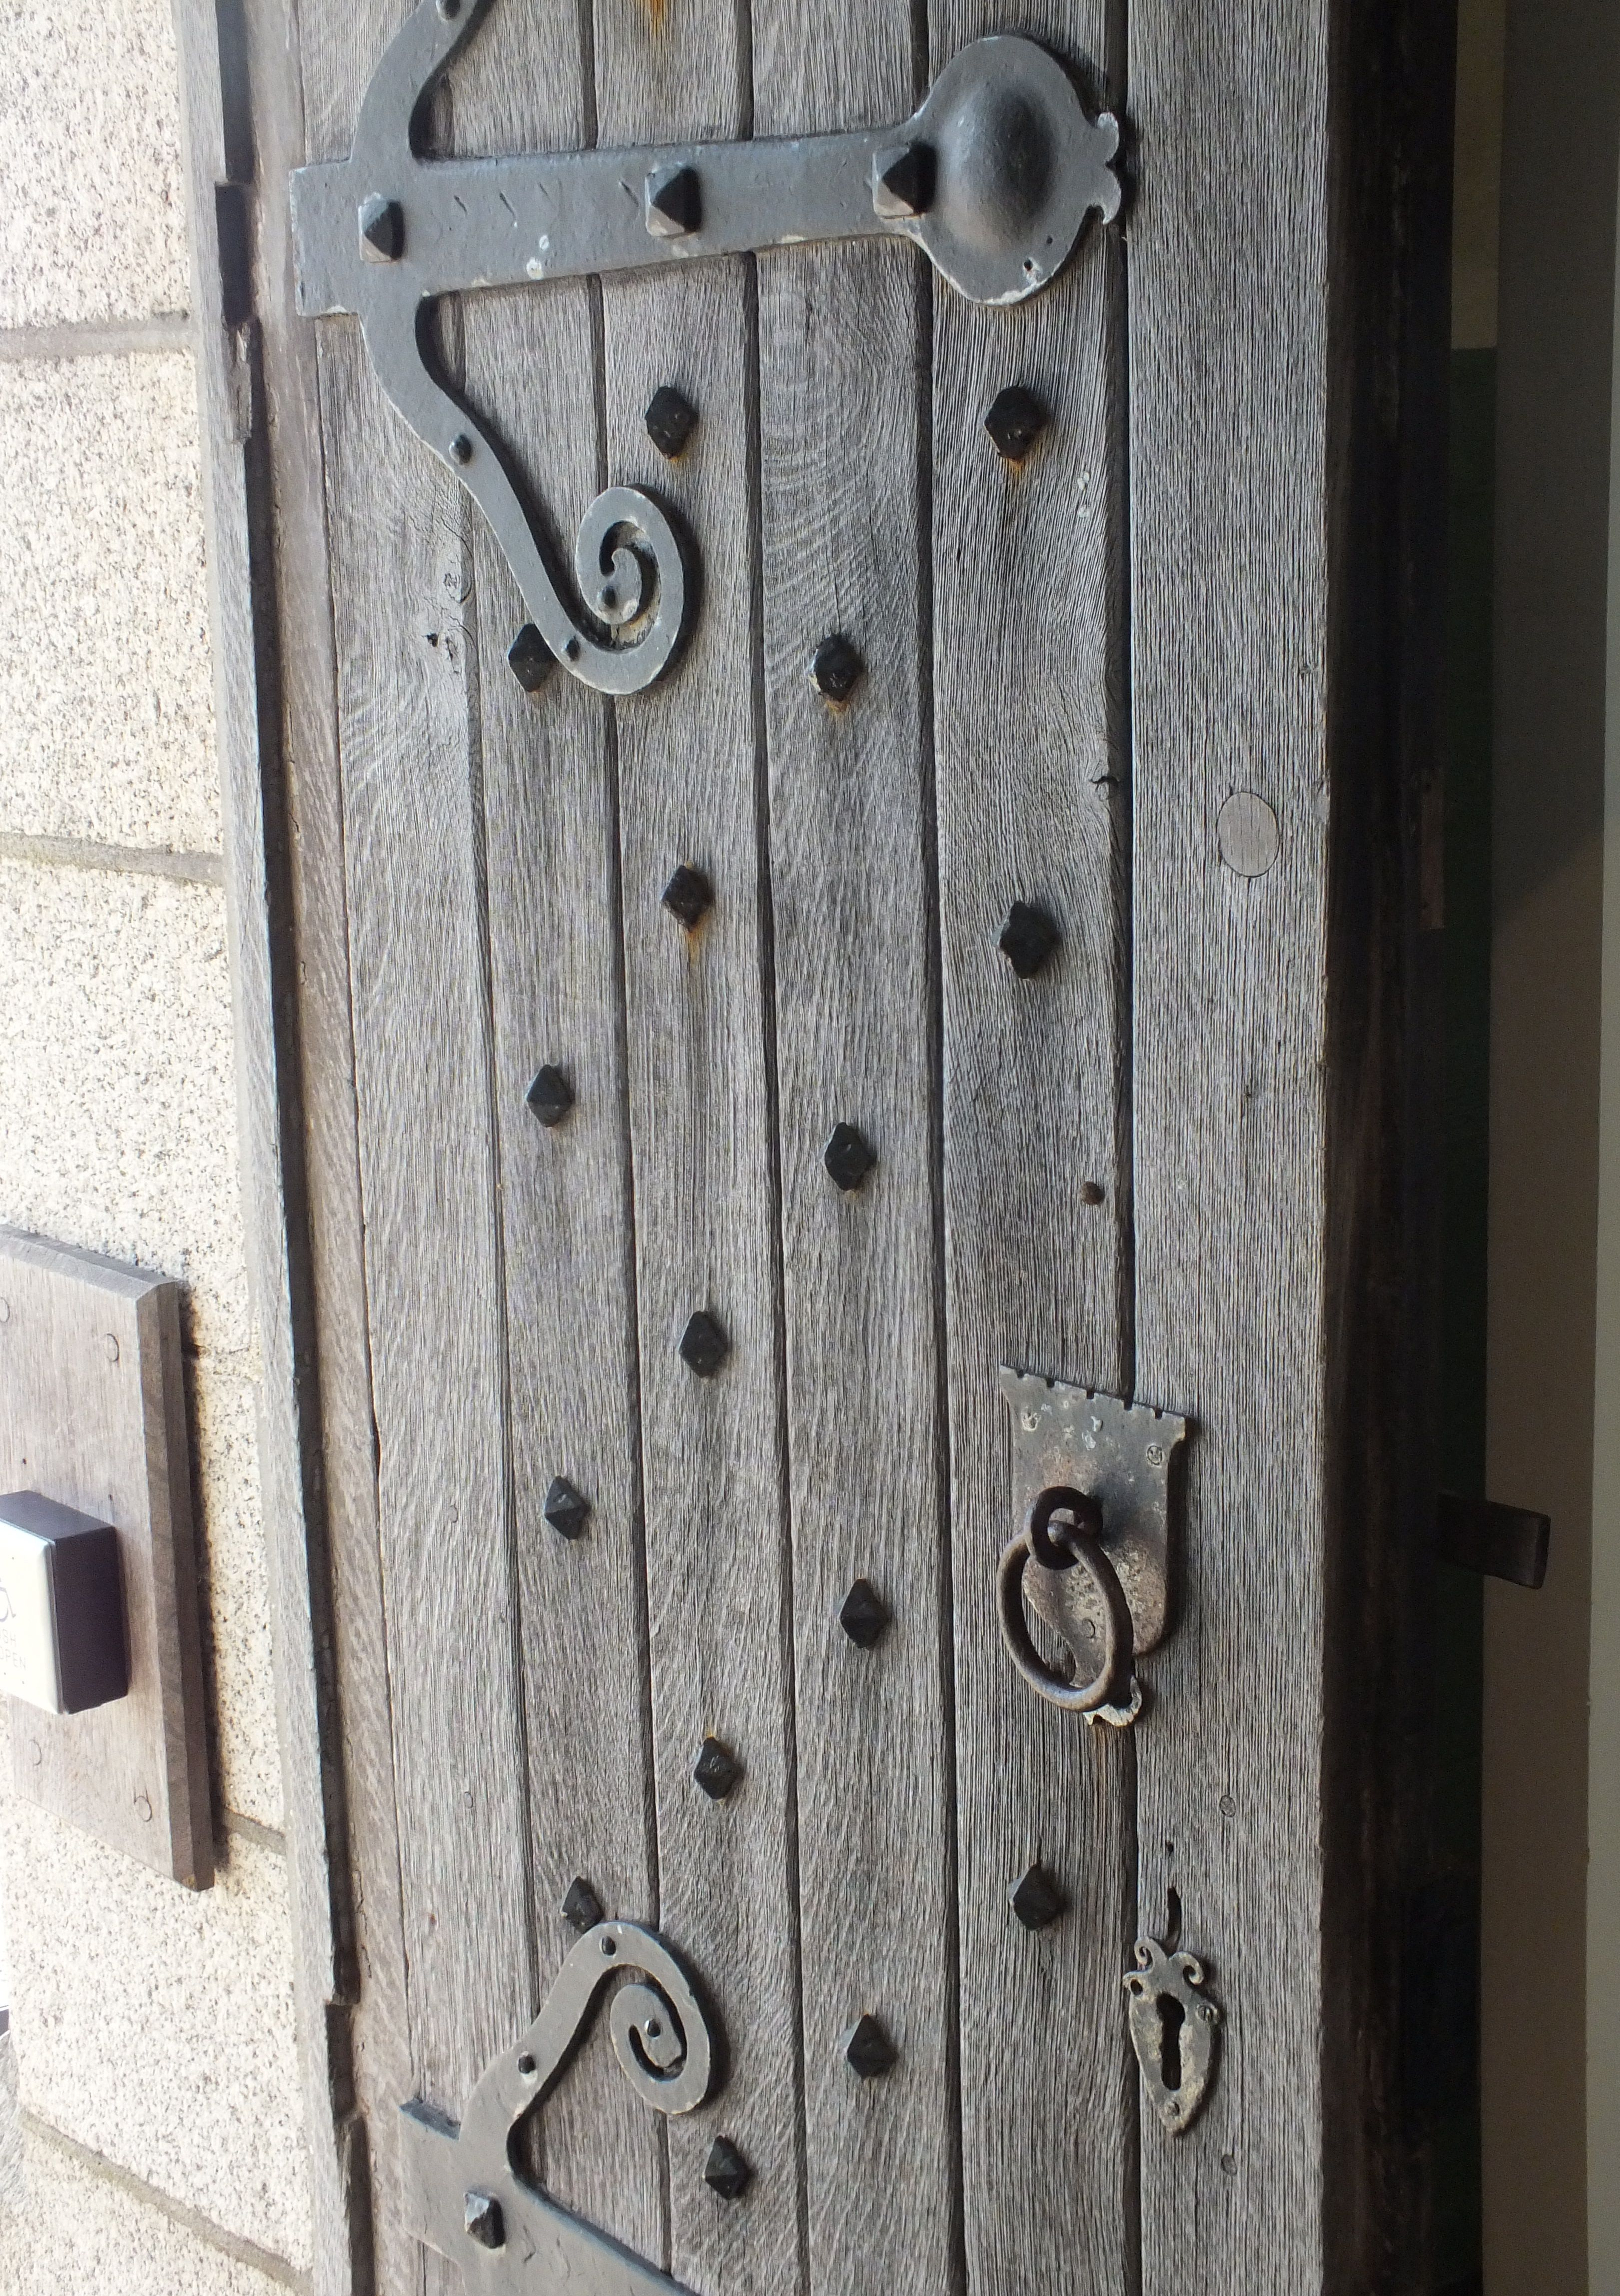 Incroyable Fantastic Old Oak Door With Wrought Iron Ironmongery. Large Strap Hinges,  Doors Studs And Ring Handle With Latch.